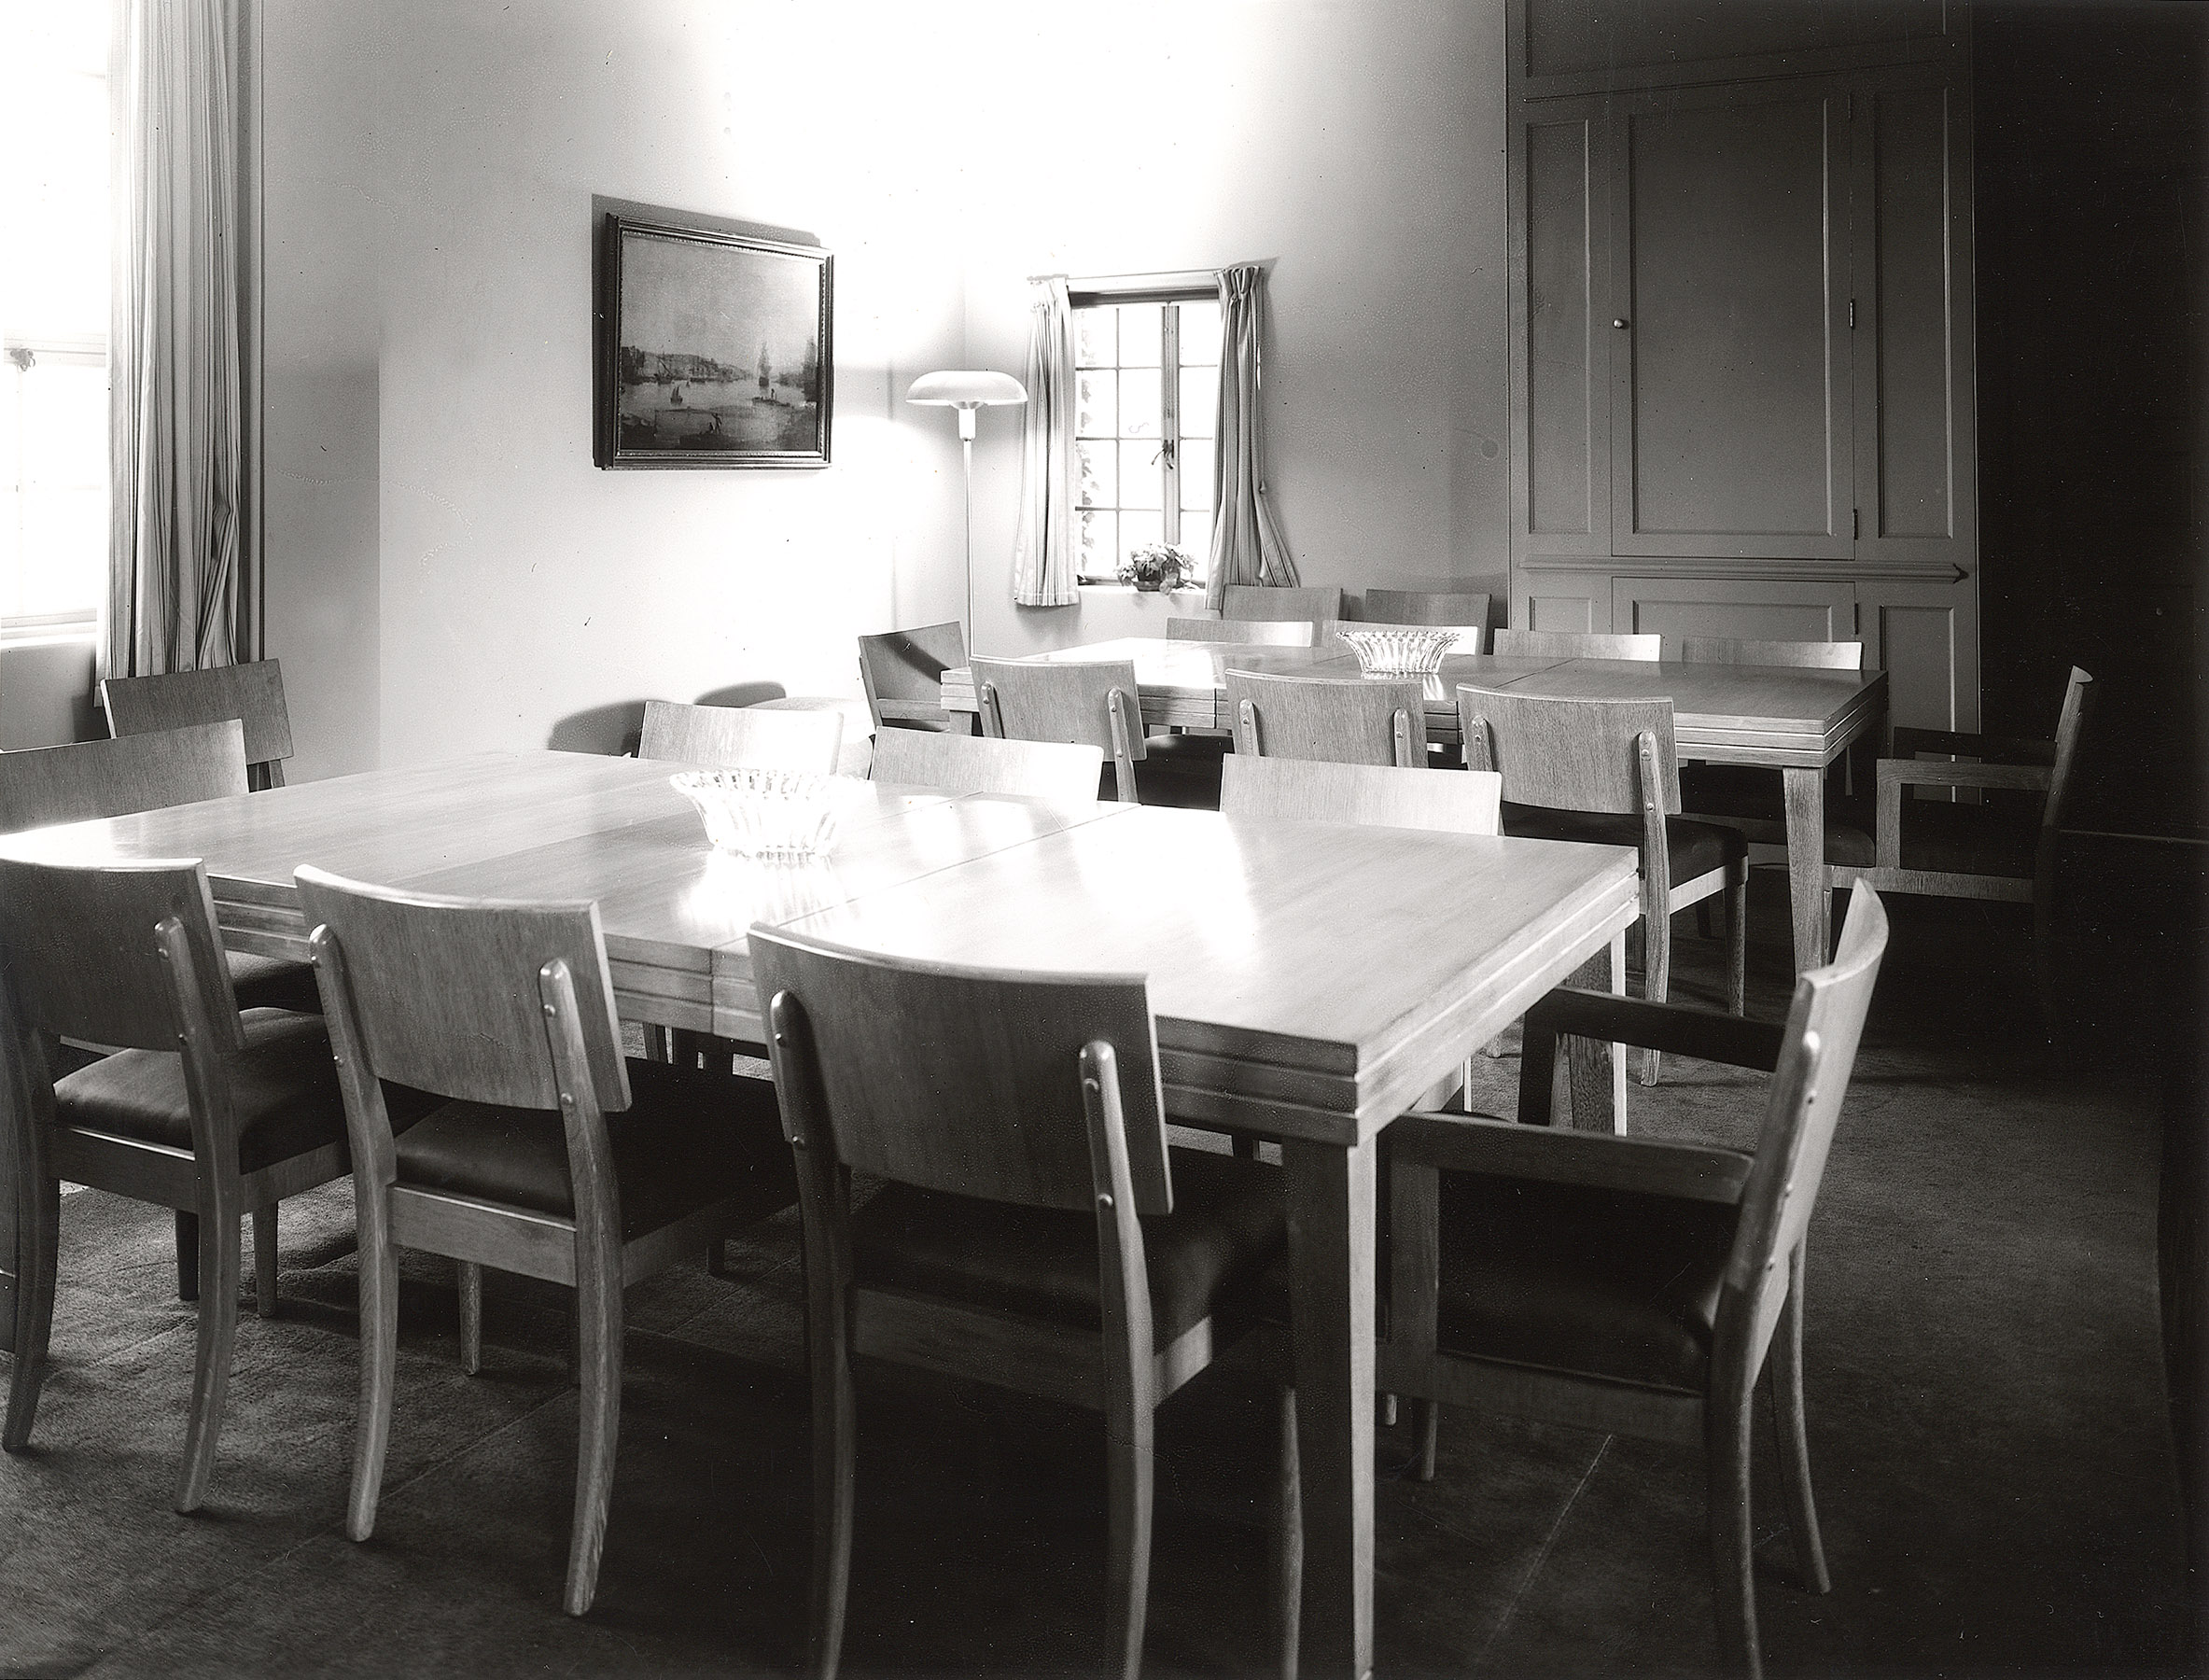 Fellows Building Dining Room, 1953